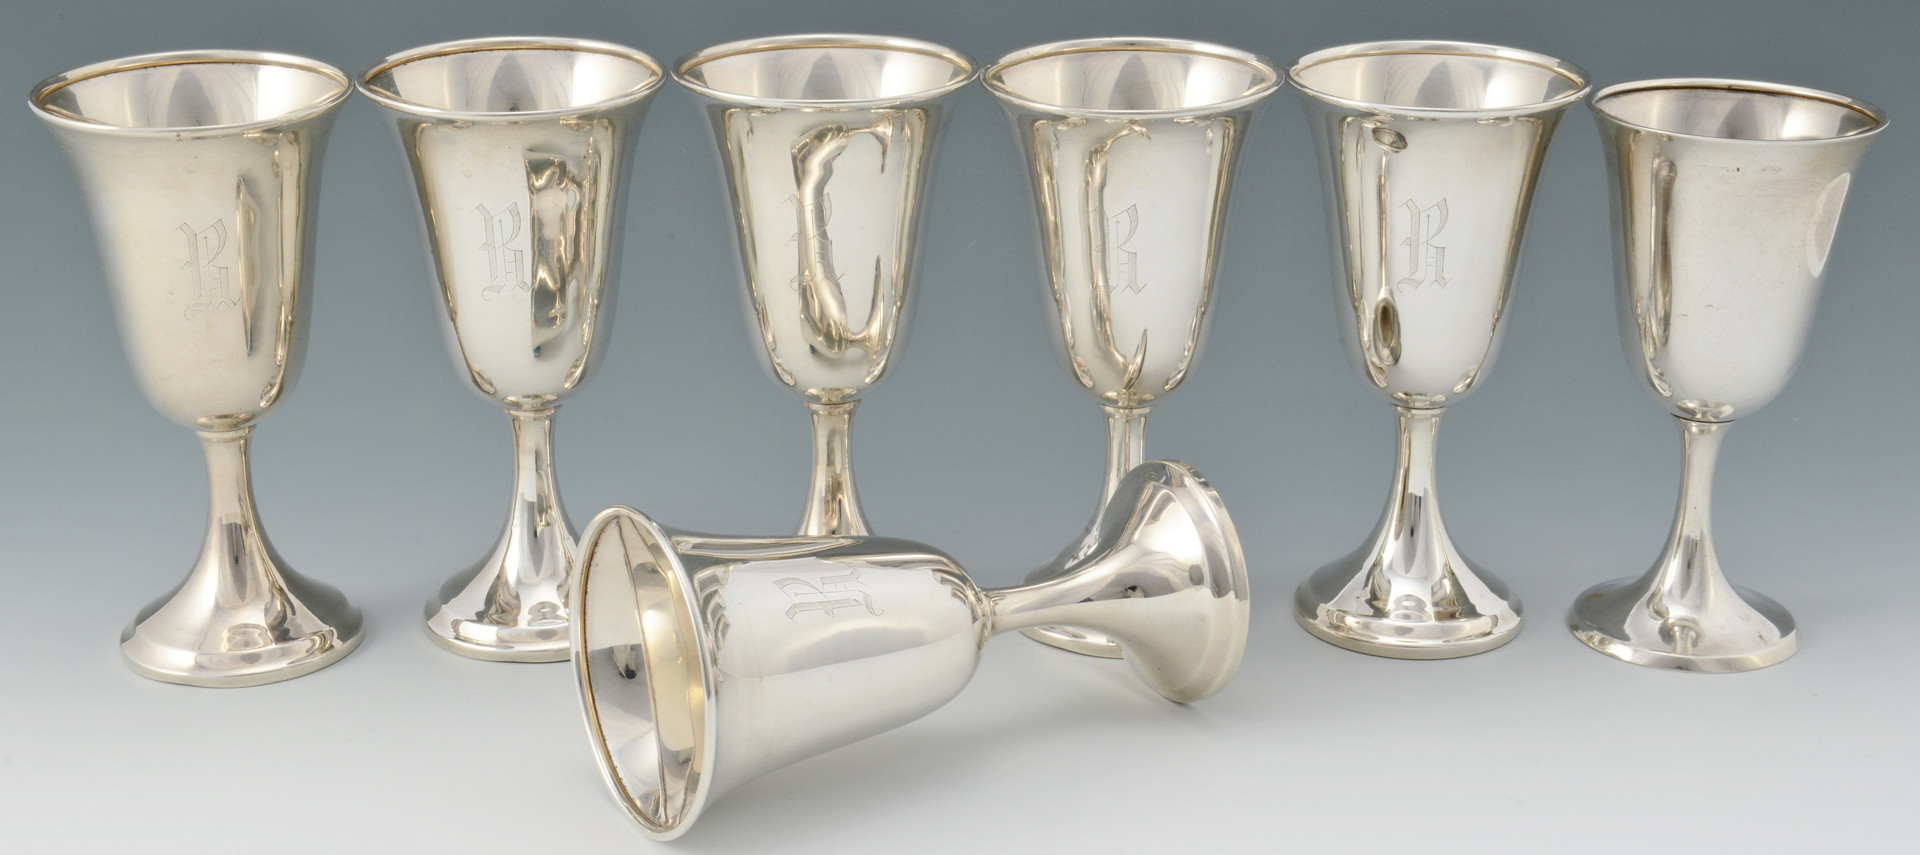 Lot 276: Grouping of 13 Sterling Goblets